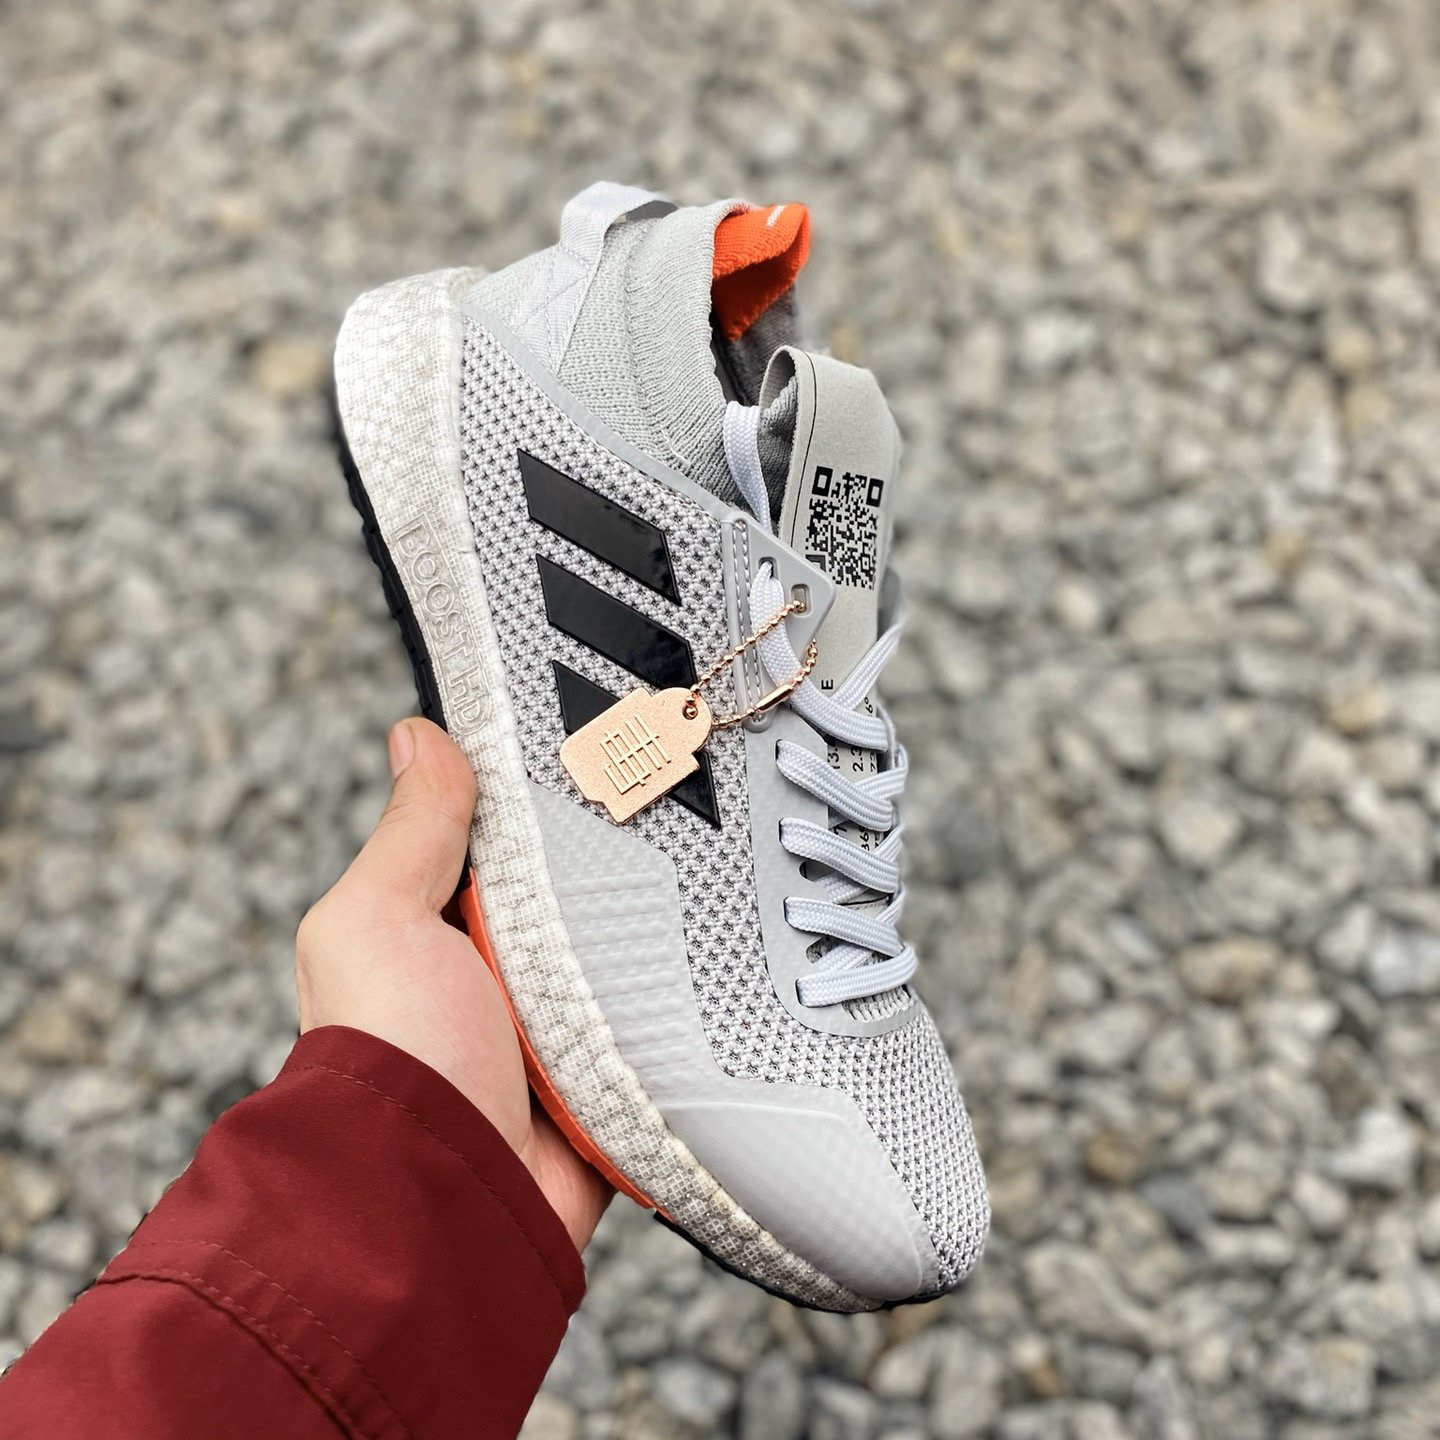 Adidas Pure Boost Mens Running Shoes Womens Running Shoes Lovers Running Shoes Casual Running Shoes.